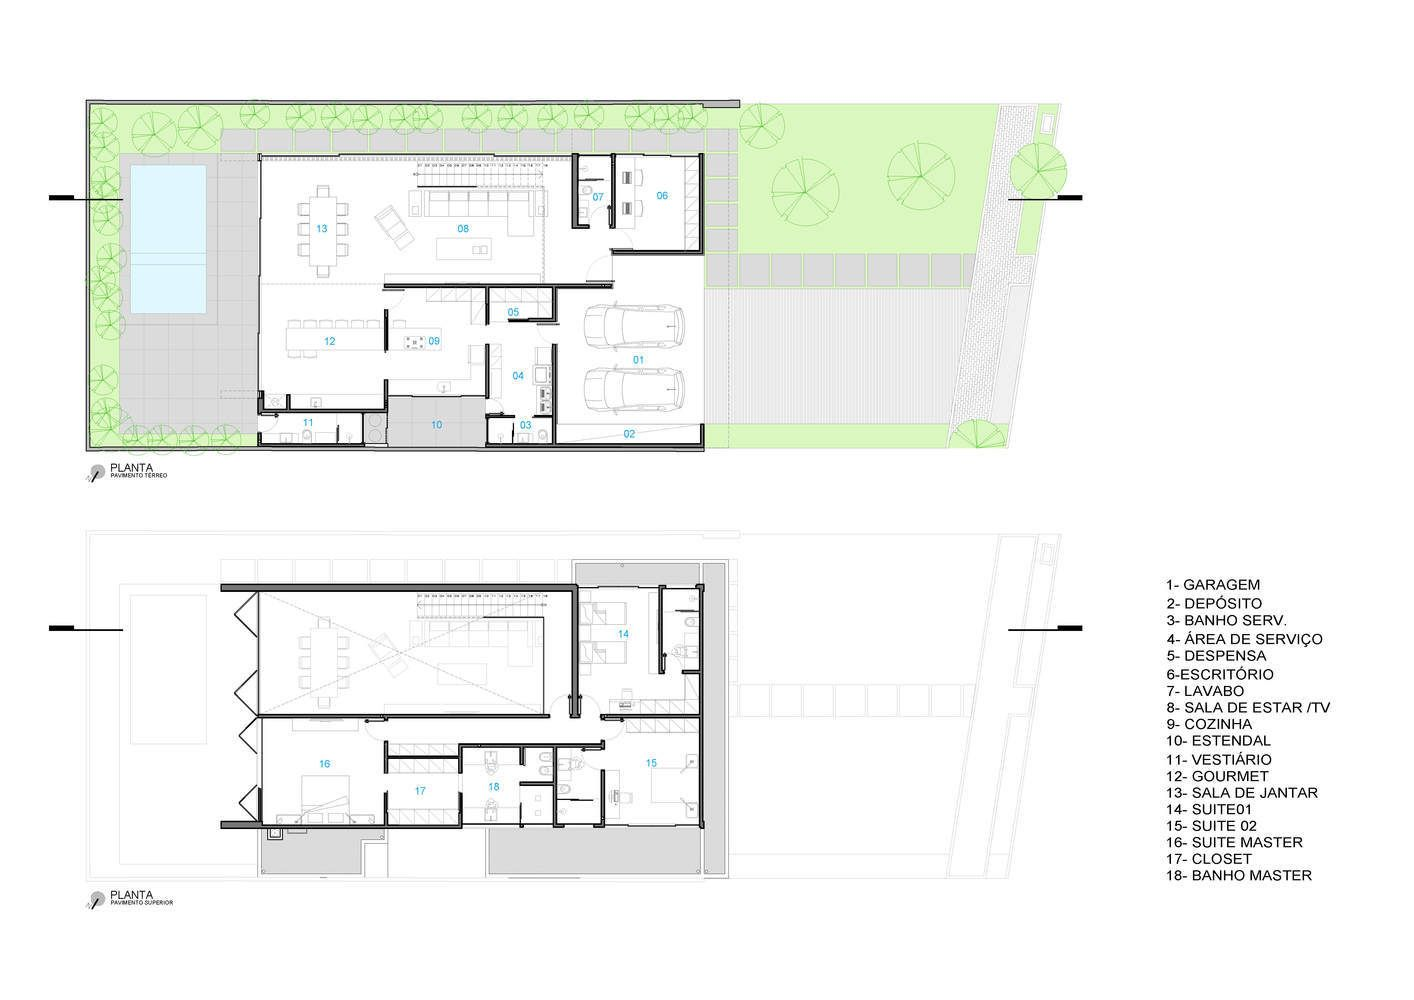 Gallery Of Brazilian Houses 20 Concrete Projects In Plan And Section 16 Concrete Projects House Plans Contemporary House Plans